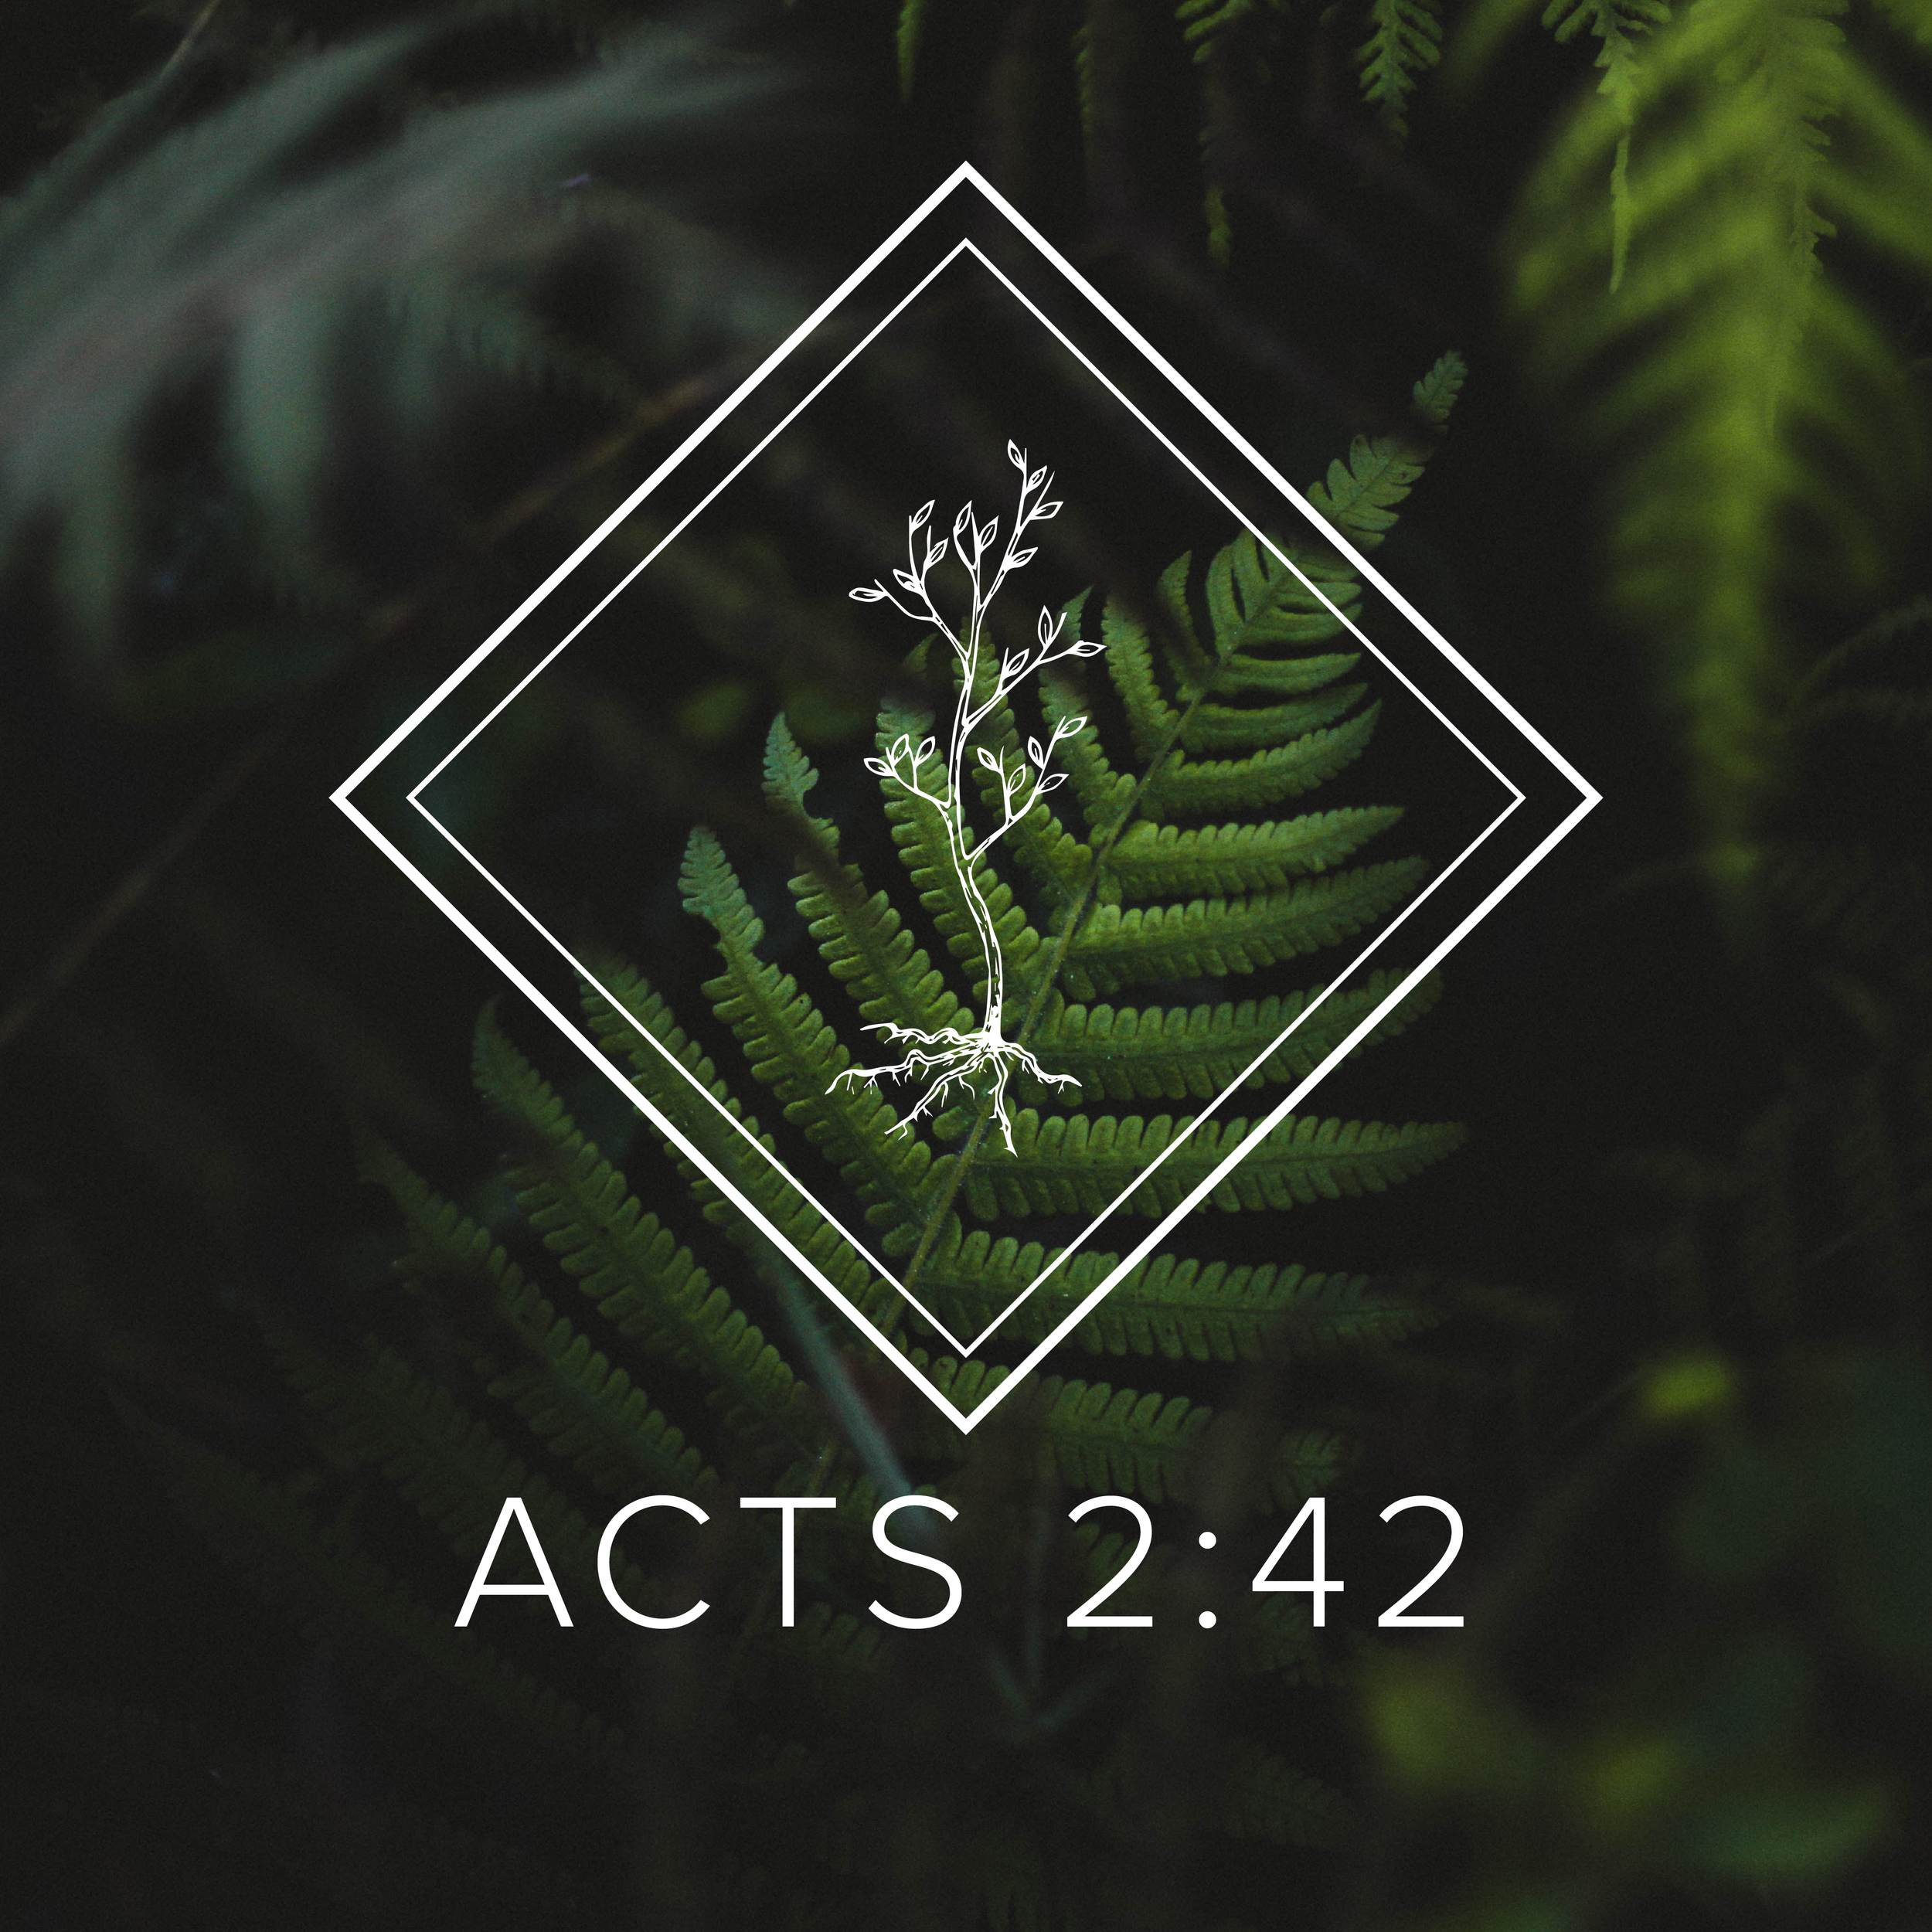 Acts 2:42 Groups